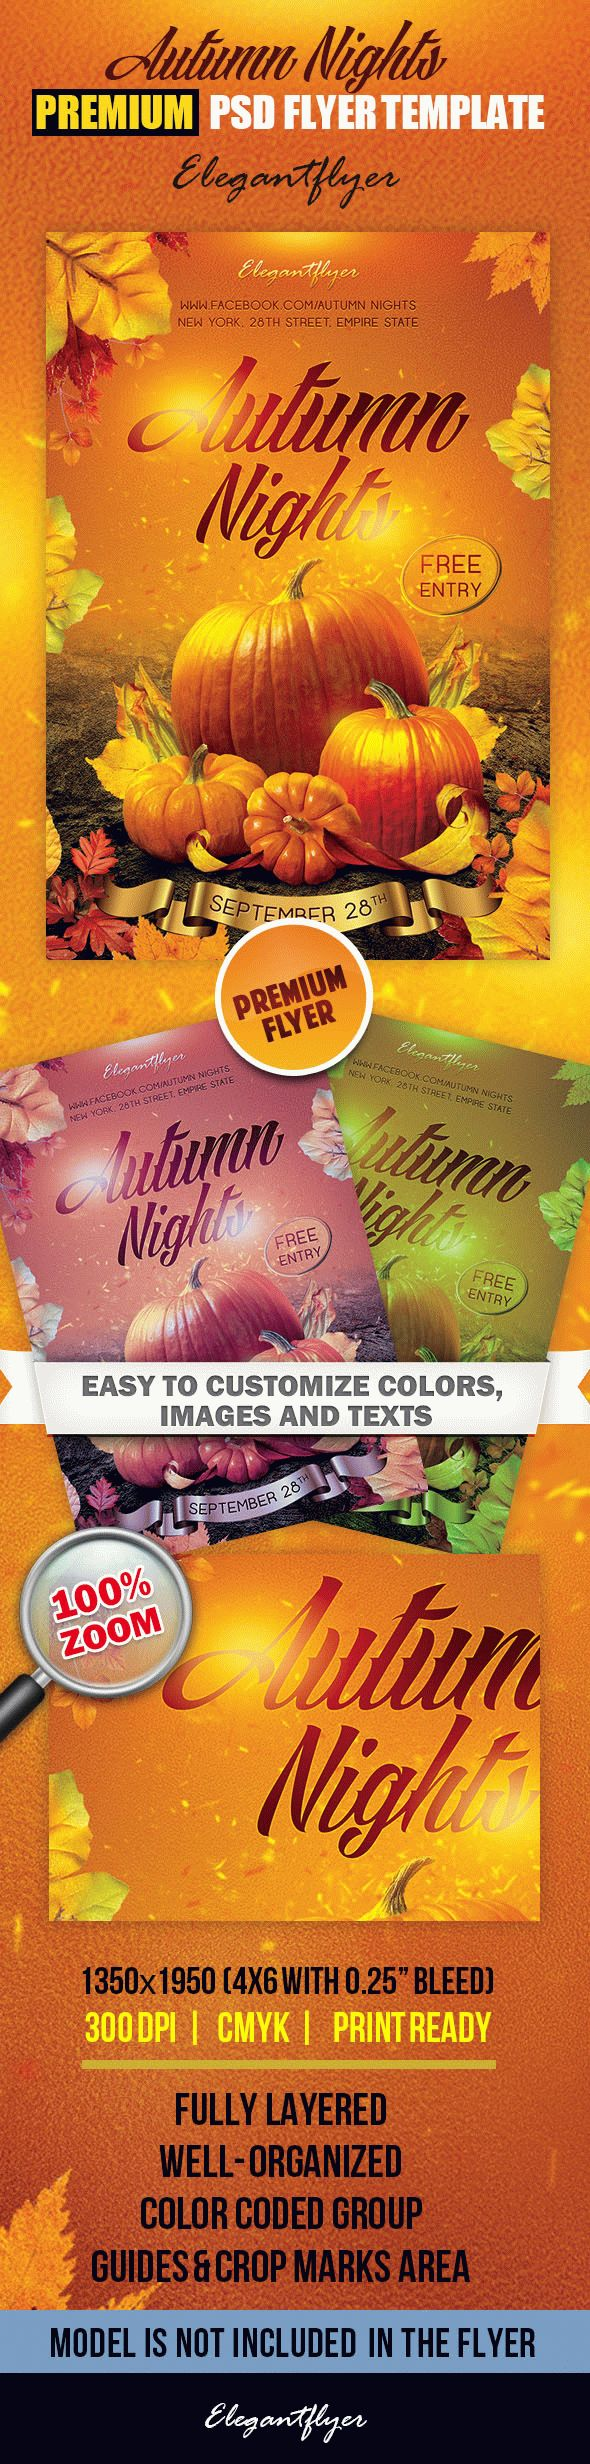 Autumn Nights – Premium Club flyer PSD Template